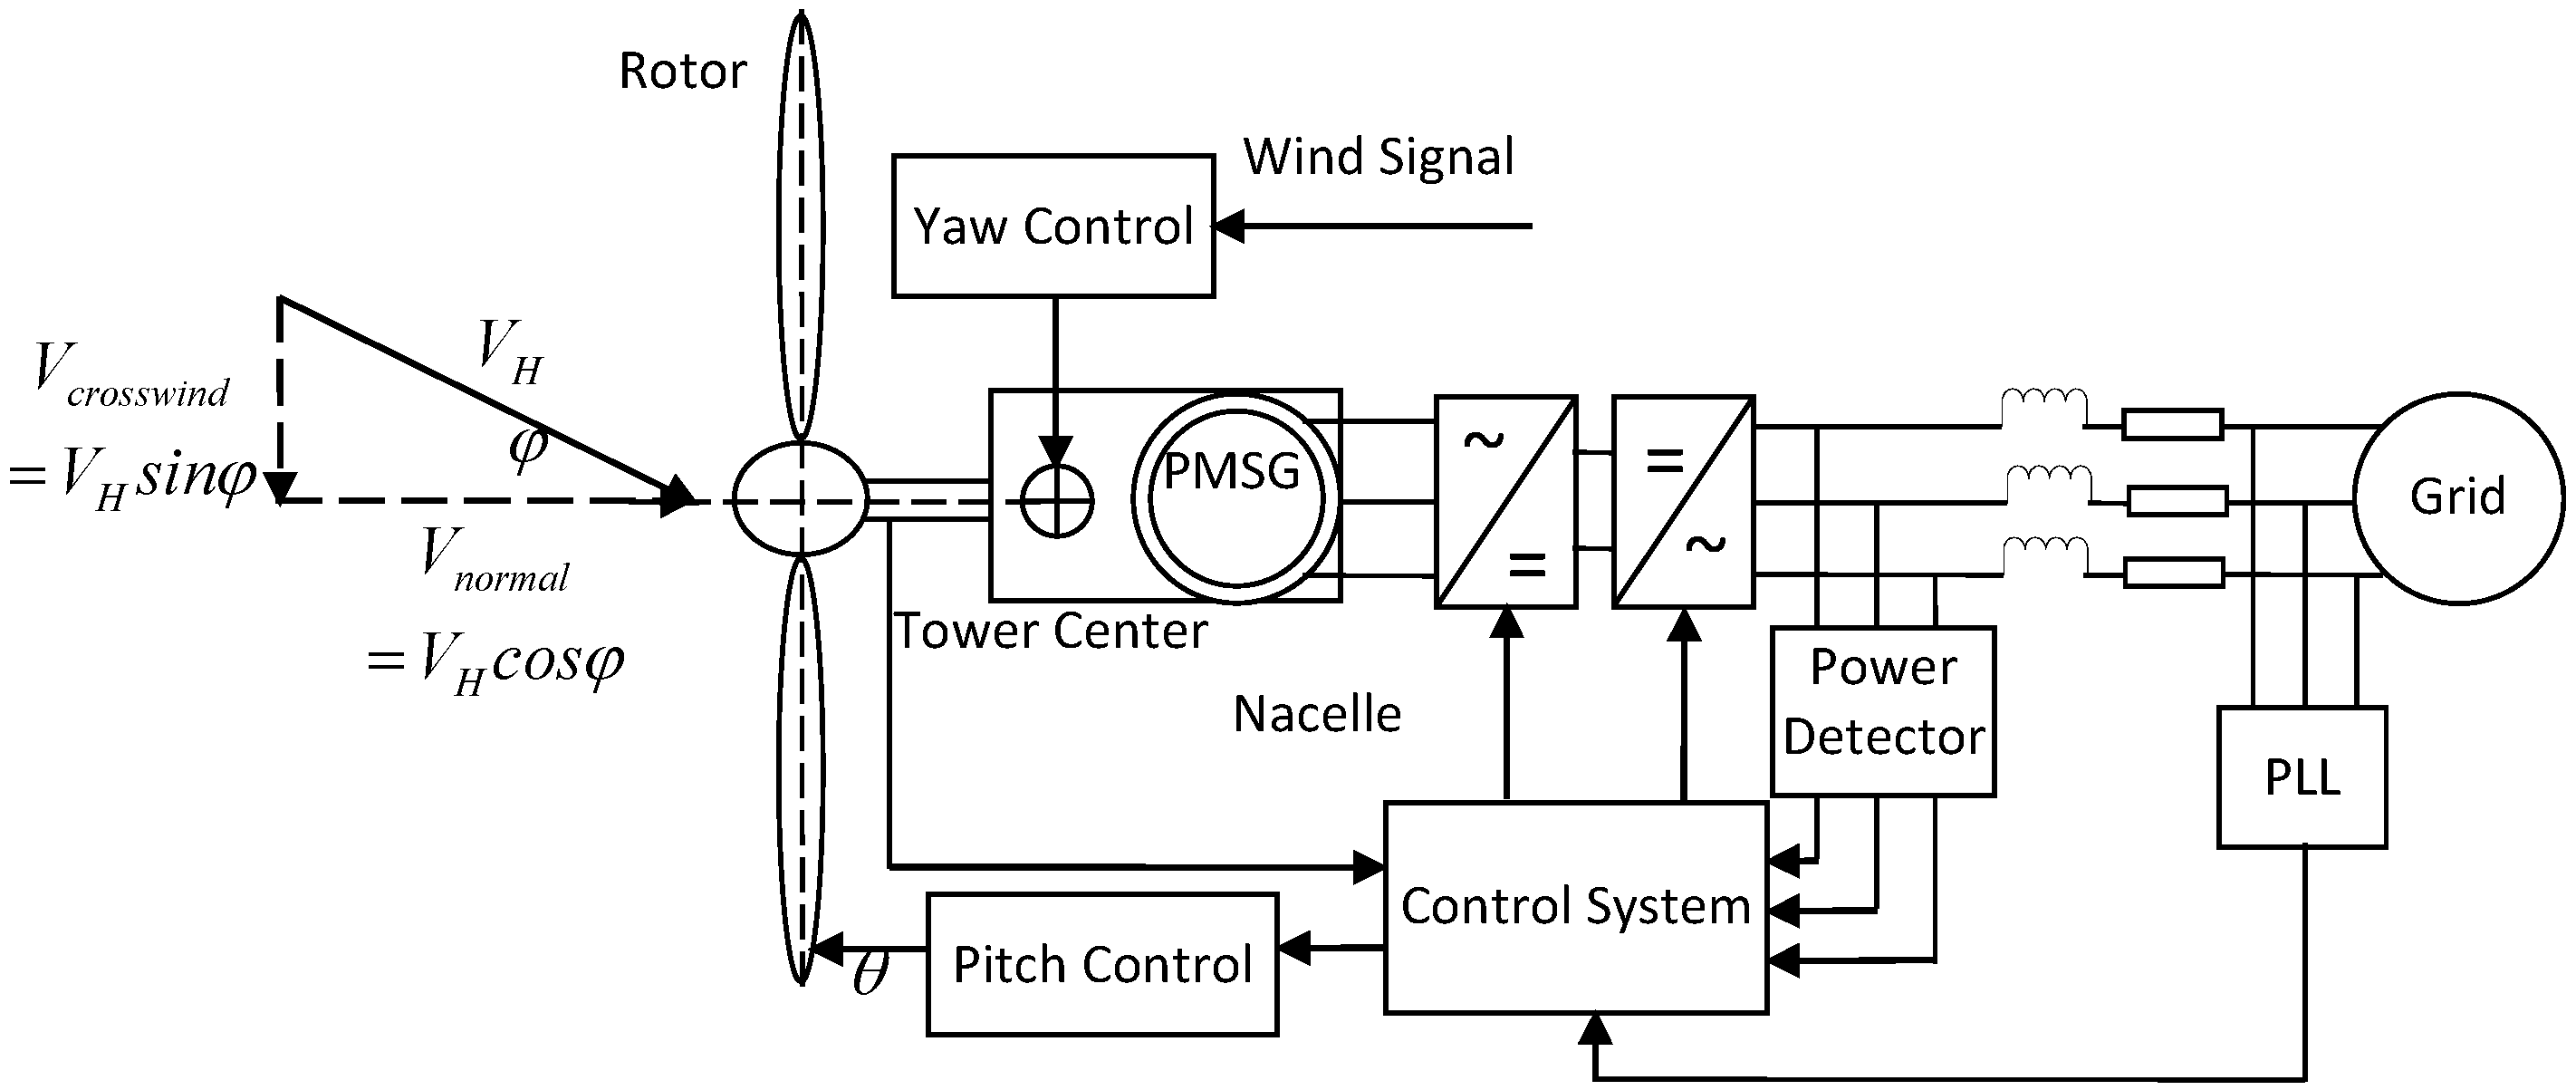 Energies Free Full Text Effects Of Yaw Error On Wind Turbine Telephone Wiring Diagram For Wall Mount 08 06286 G001 1024